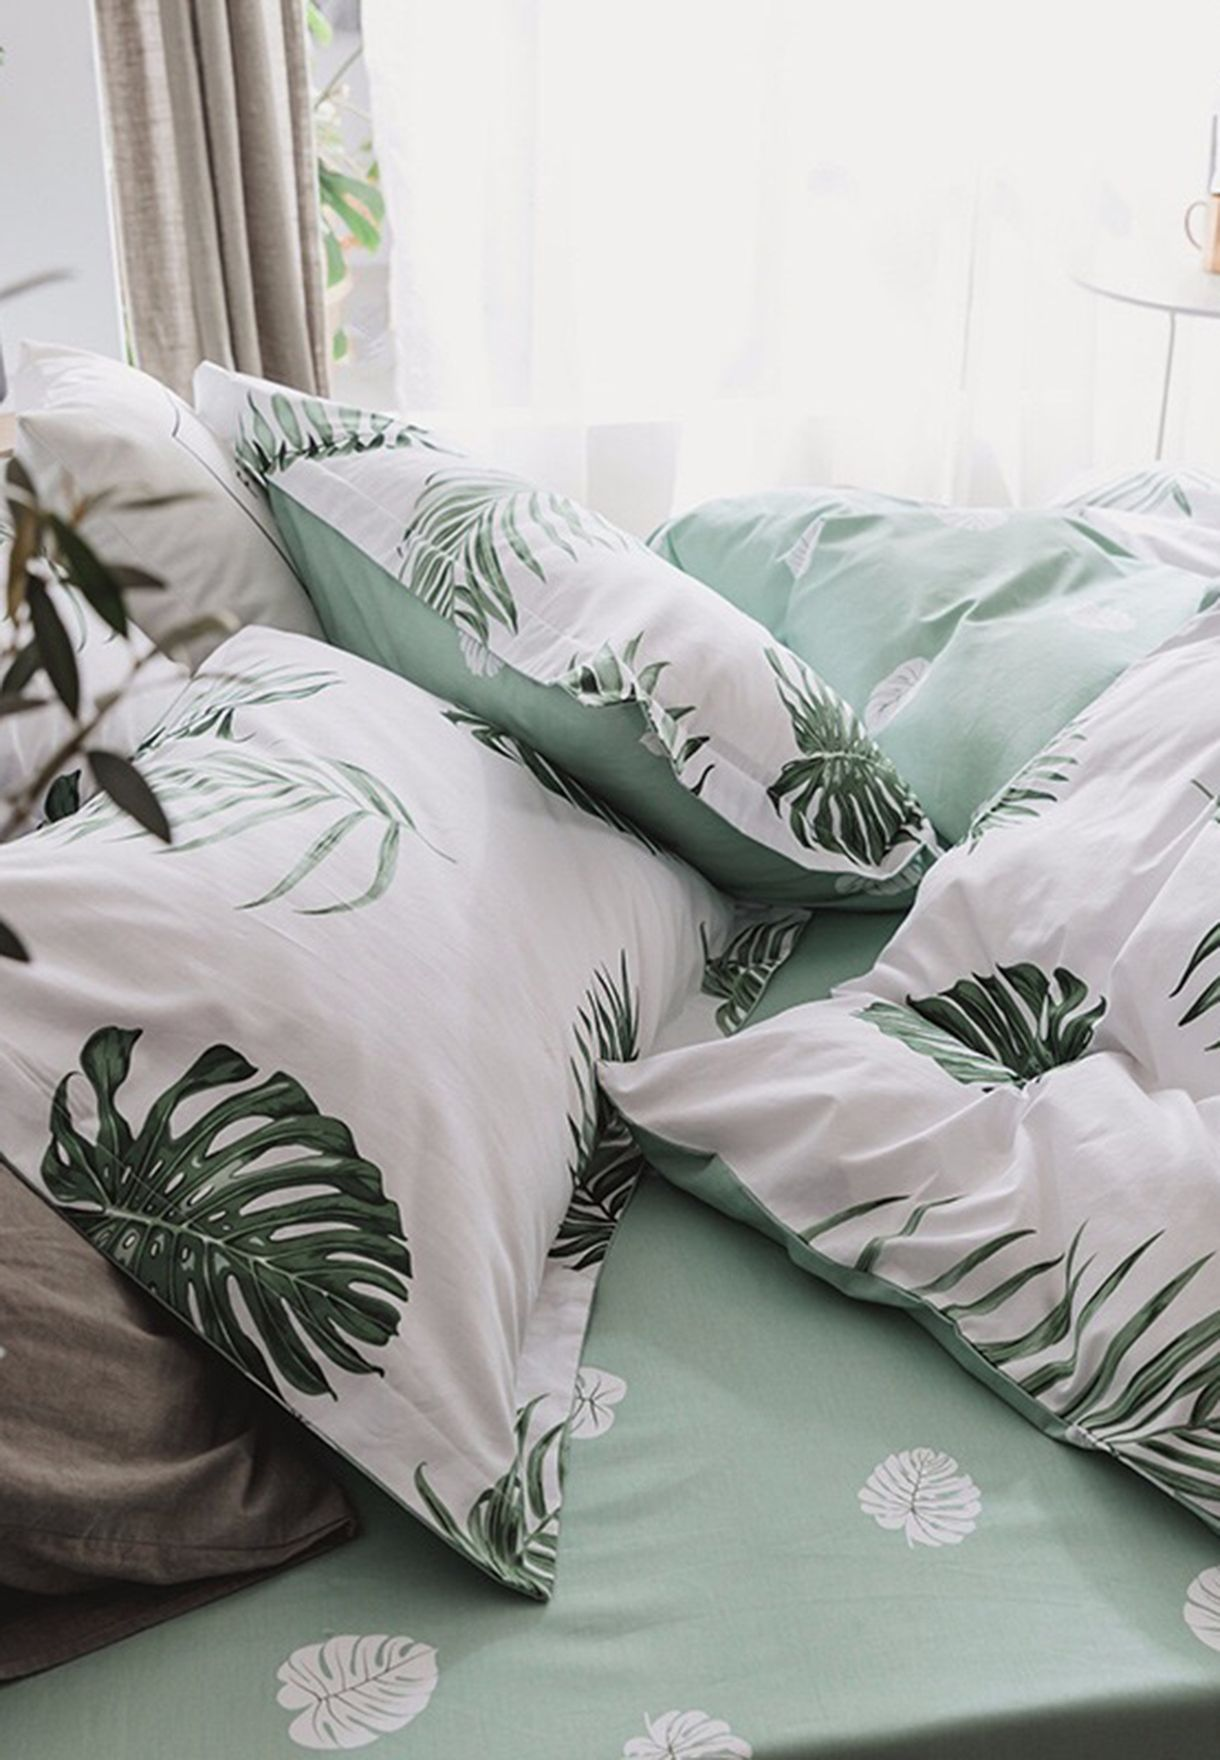 Tropical Print Bedding Set - King 200 x 230cm